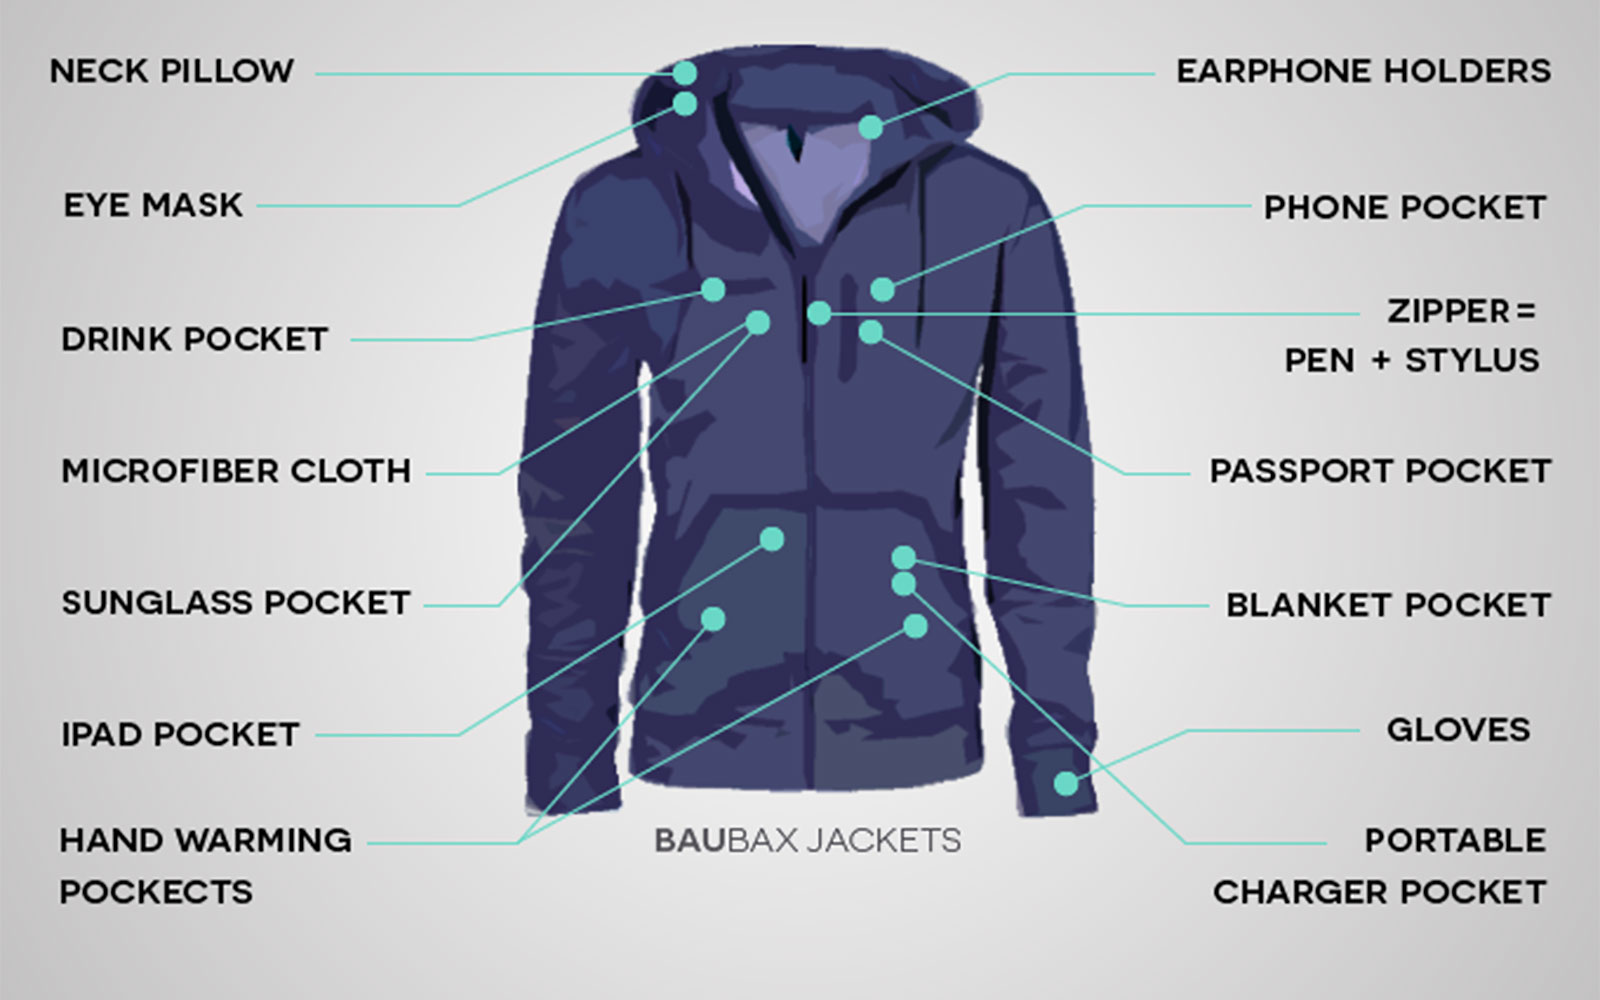 JACKET0715-kickstarter-travel-jacket.jpg